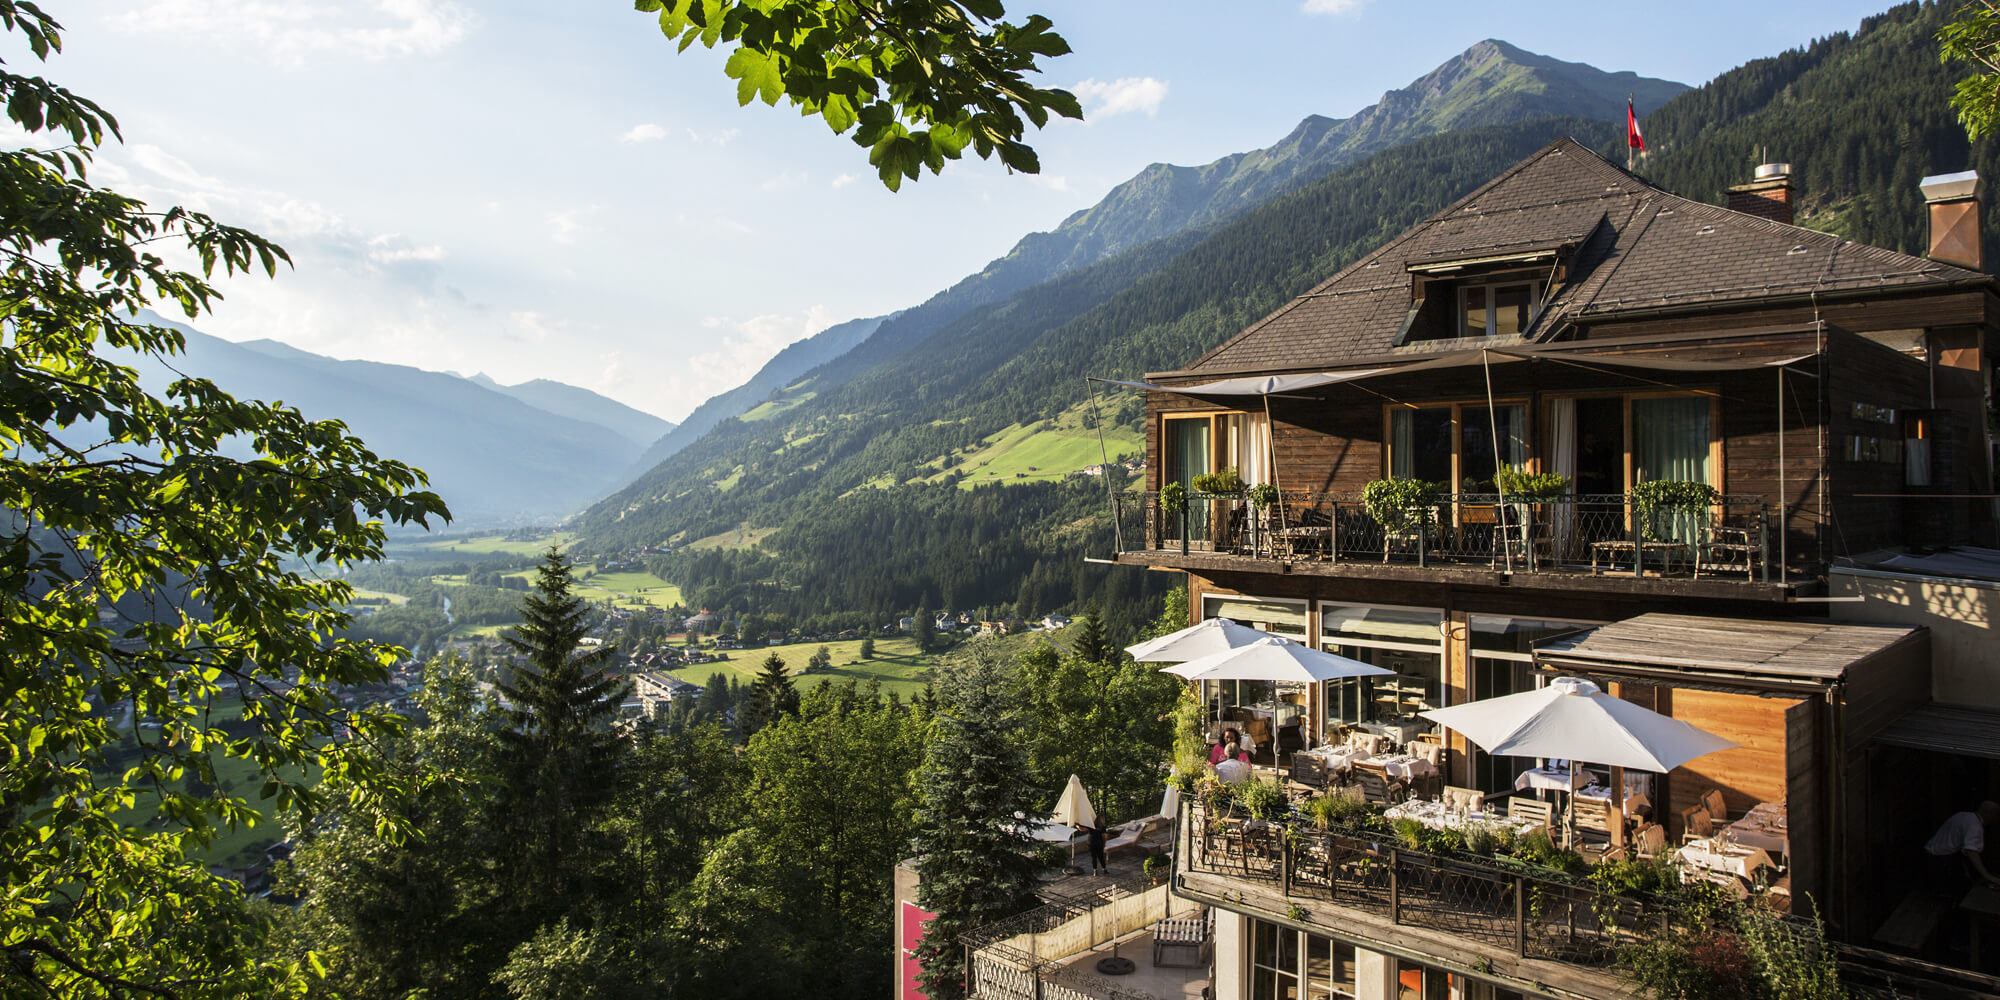 the i-escape blog / Your favourite hotels of 2018 / Haus Hirt, Bad Gastein, Austria